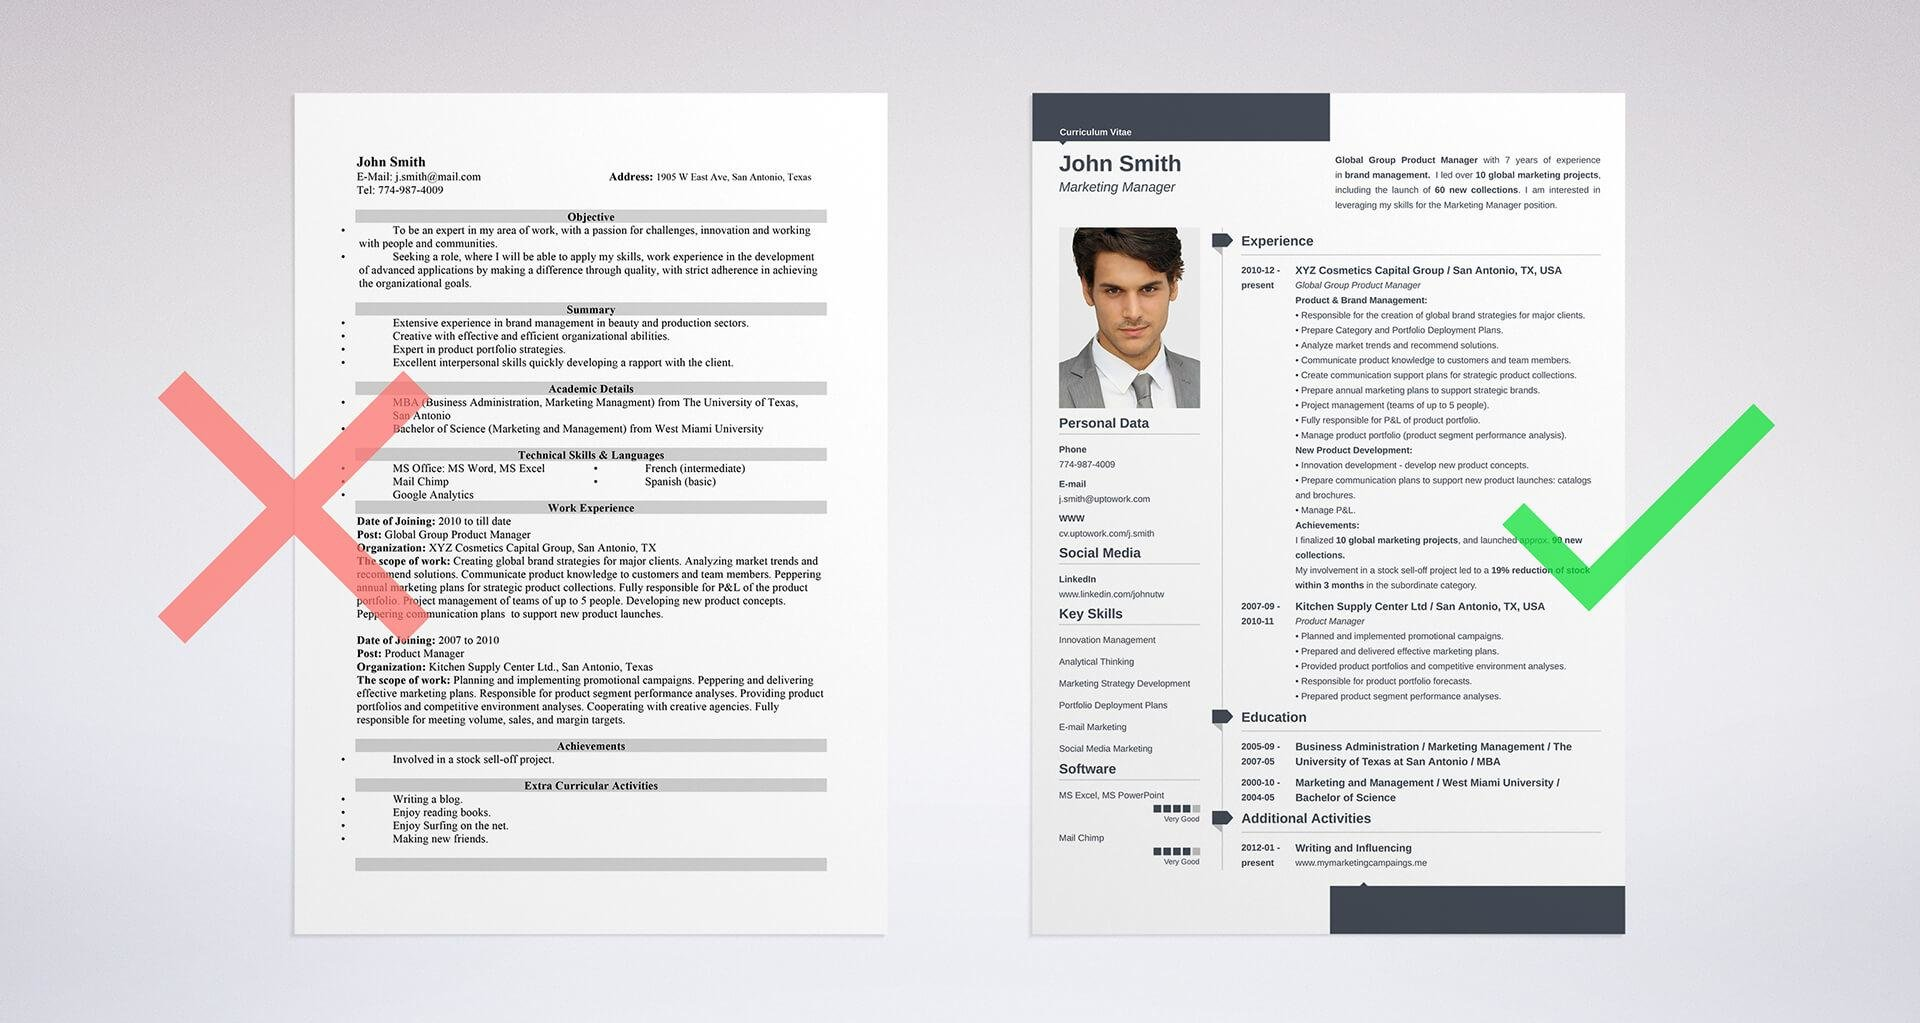 CV Vs. Resume: What Is The Difference? When To Use Which (Examples